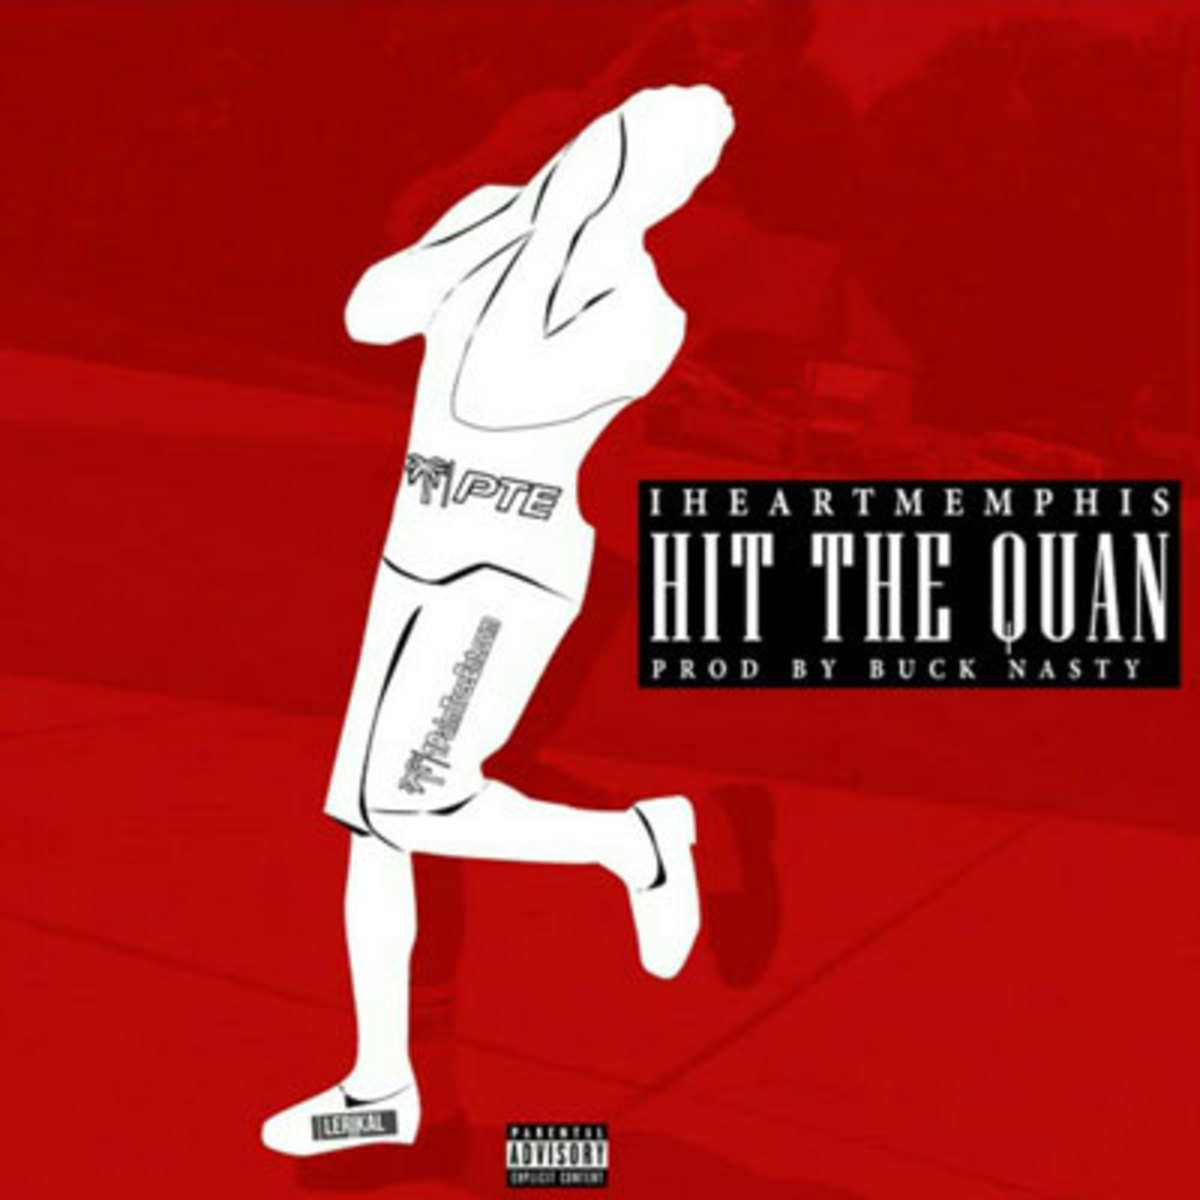 iheart-memphis-hit-the-quan.jpg